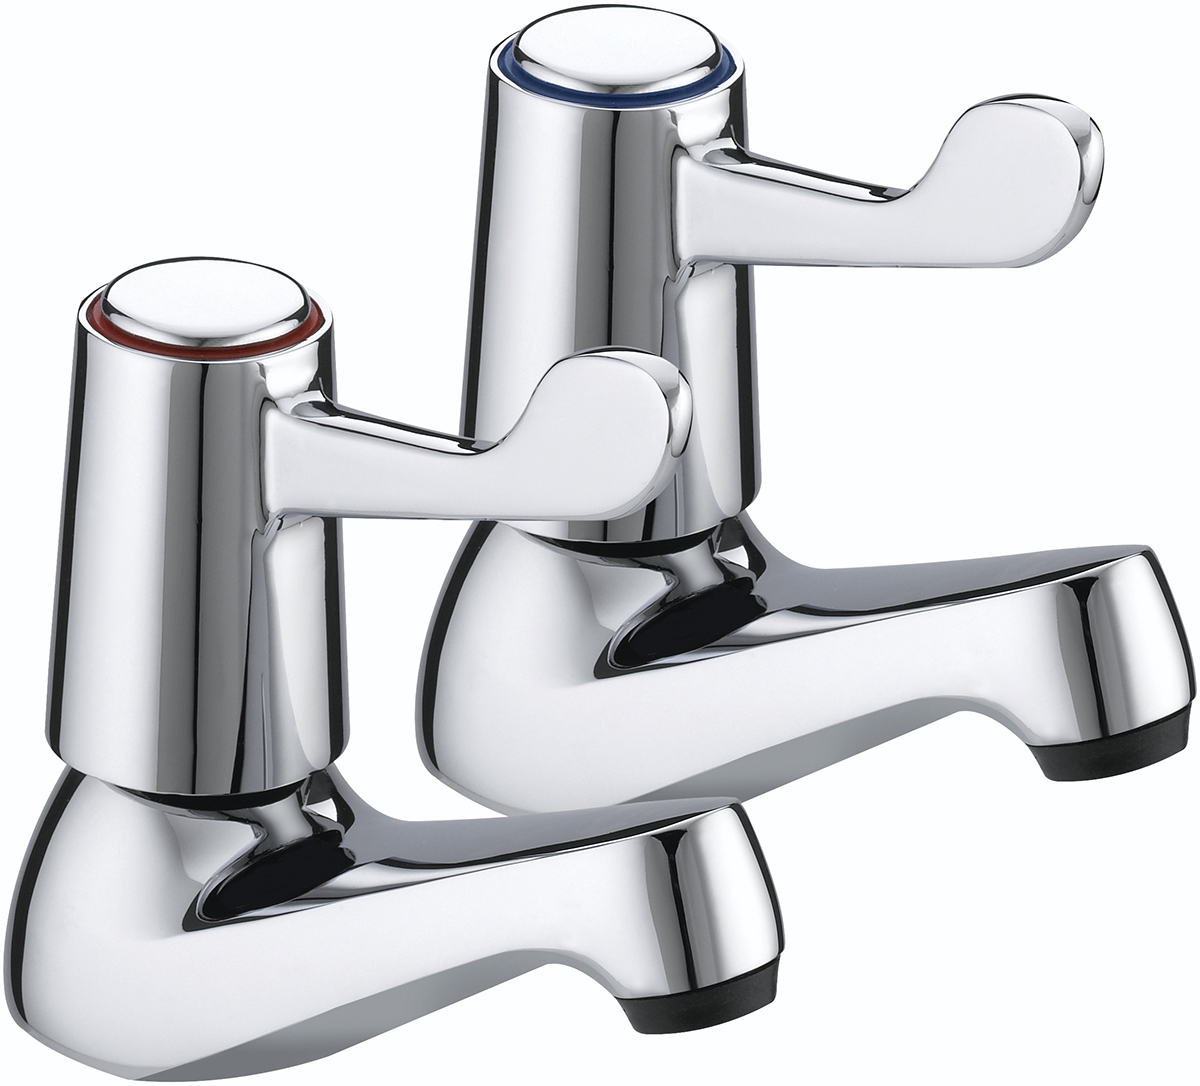 "Basin Taps with 3"" (76mm) Levers"